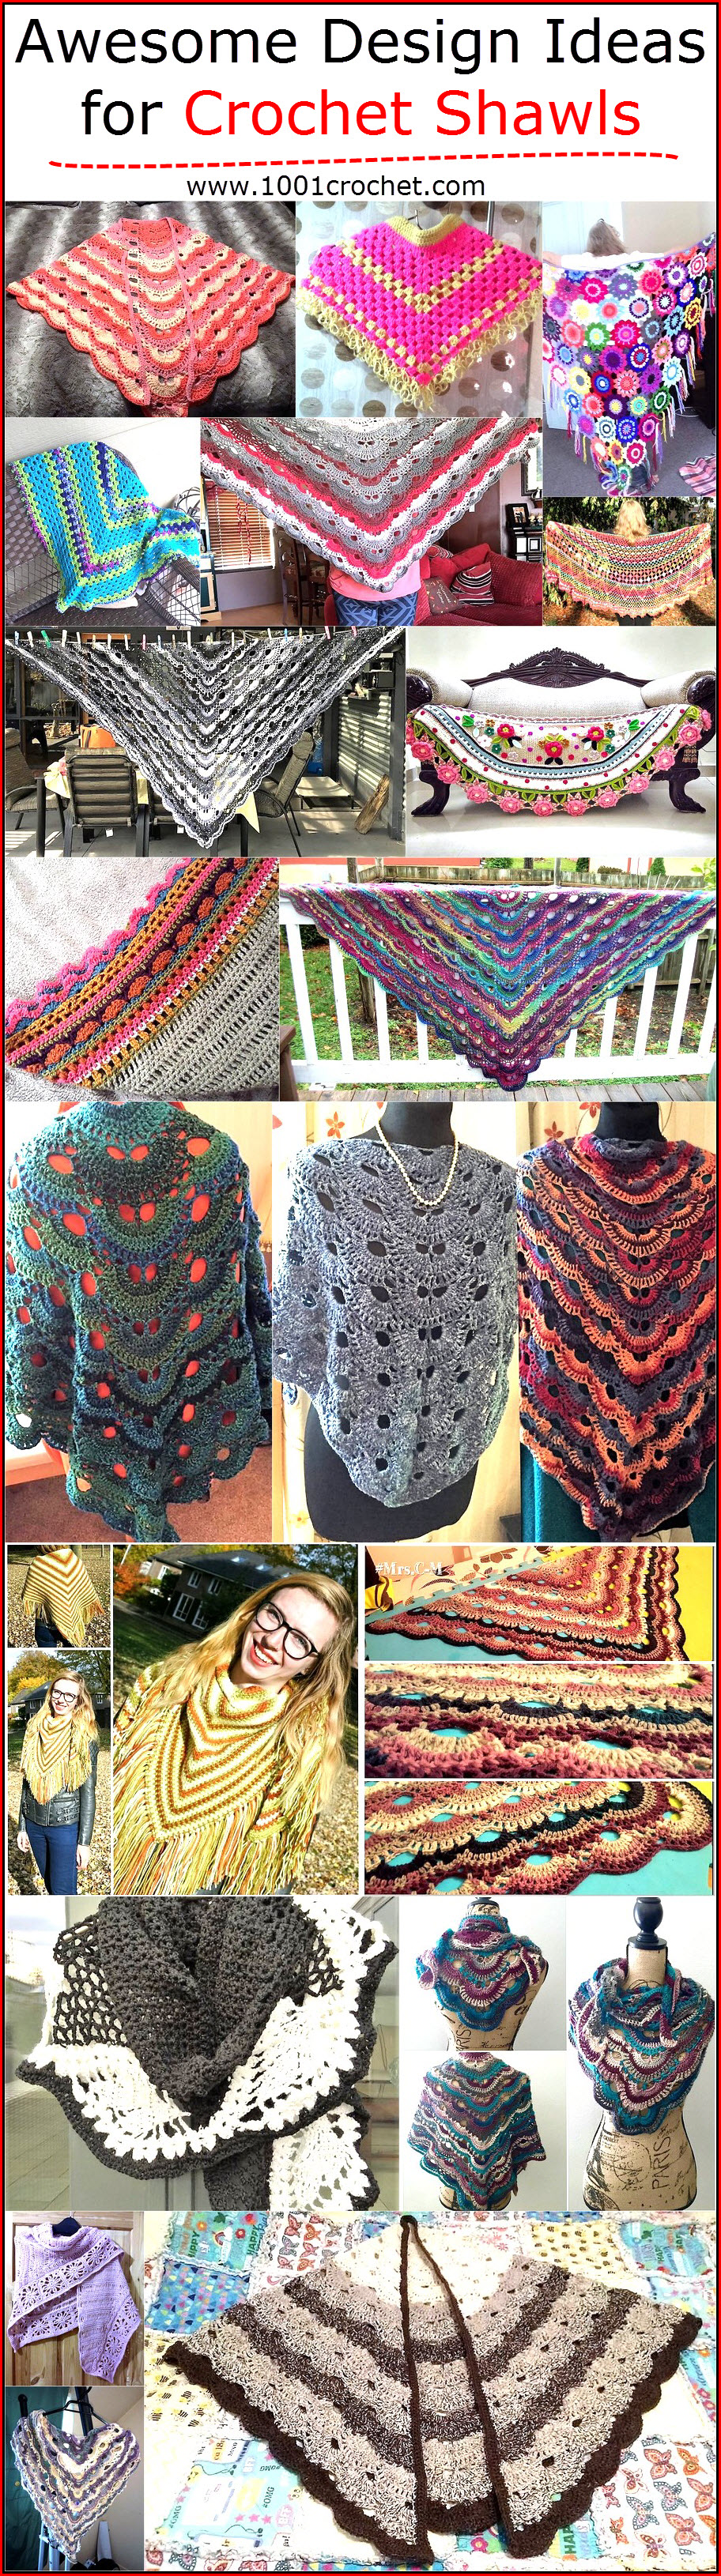 awesome-design-ideas-for-crochet-shawls